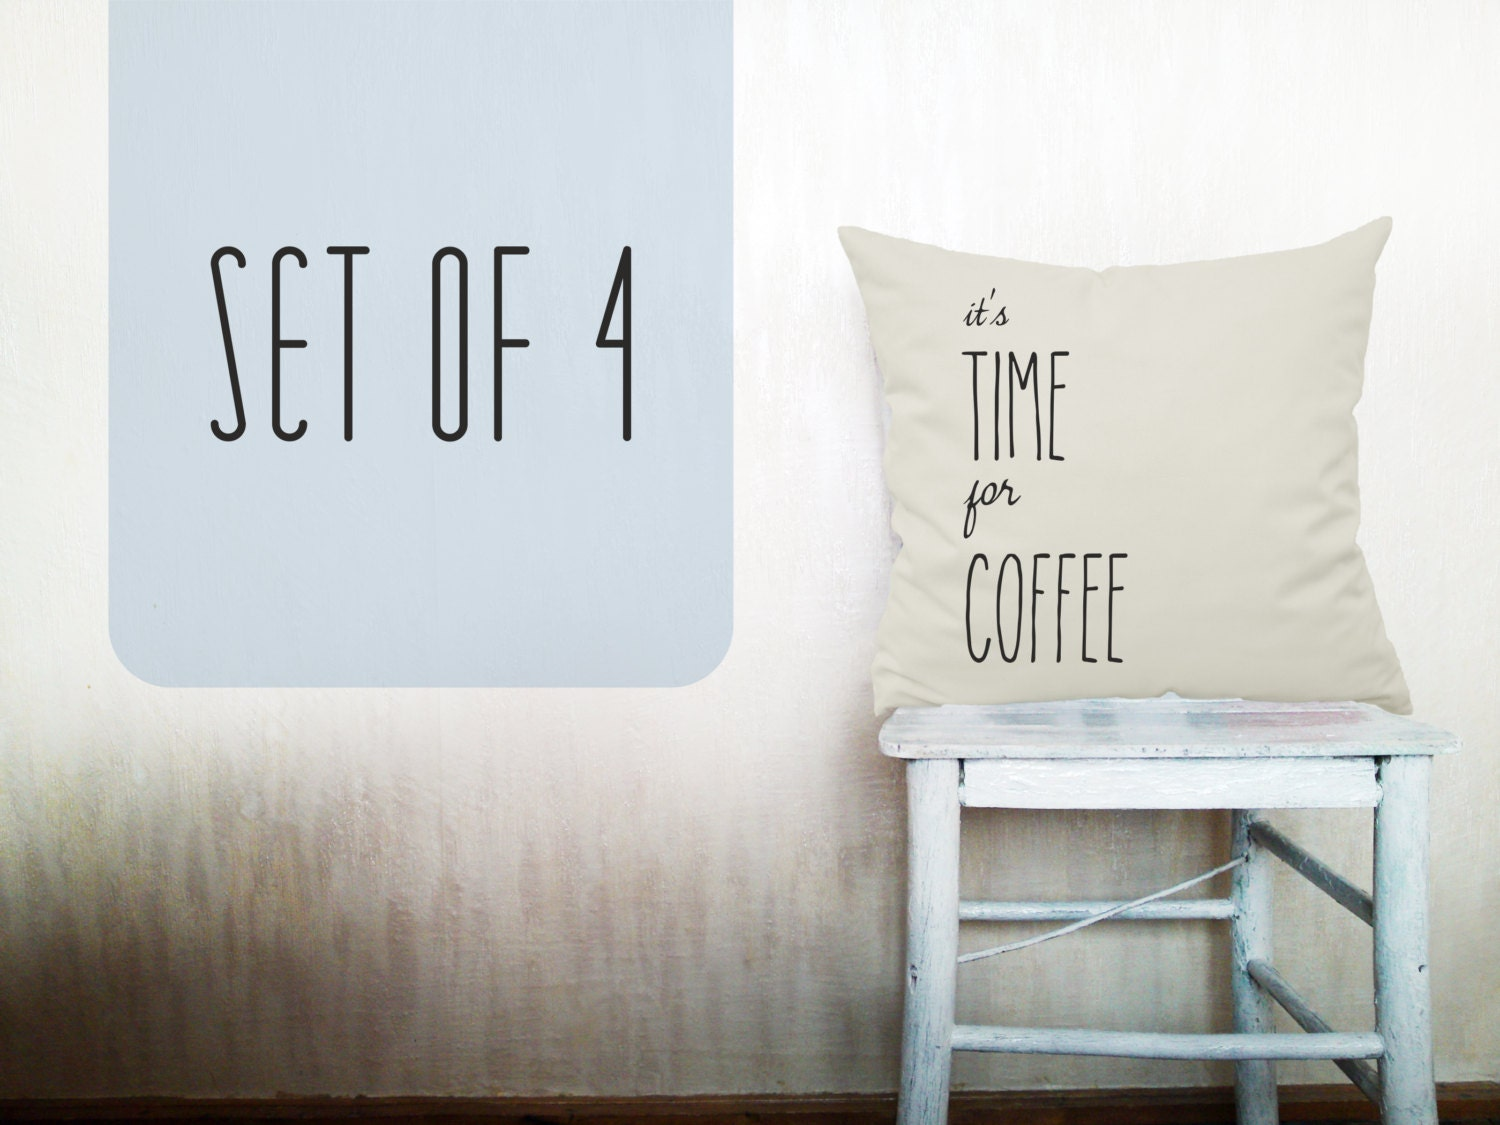 It's time for Coffee pillow Christmas decor gift Coffee pillow decorative throw pillow beige cotton sofa 12x12 inches Coffee pillow ohtteam - HomeLivingIdeas